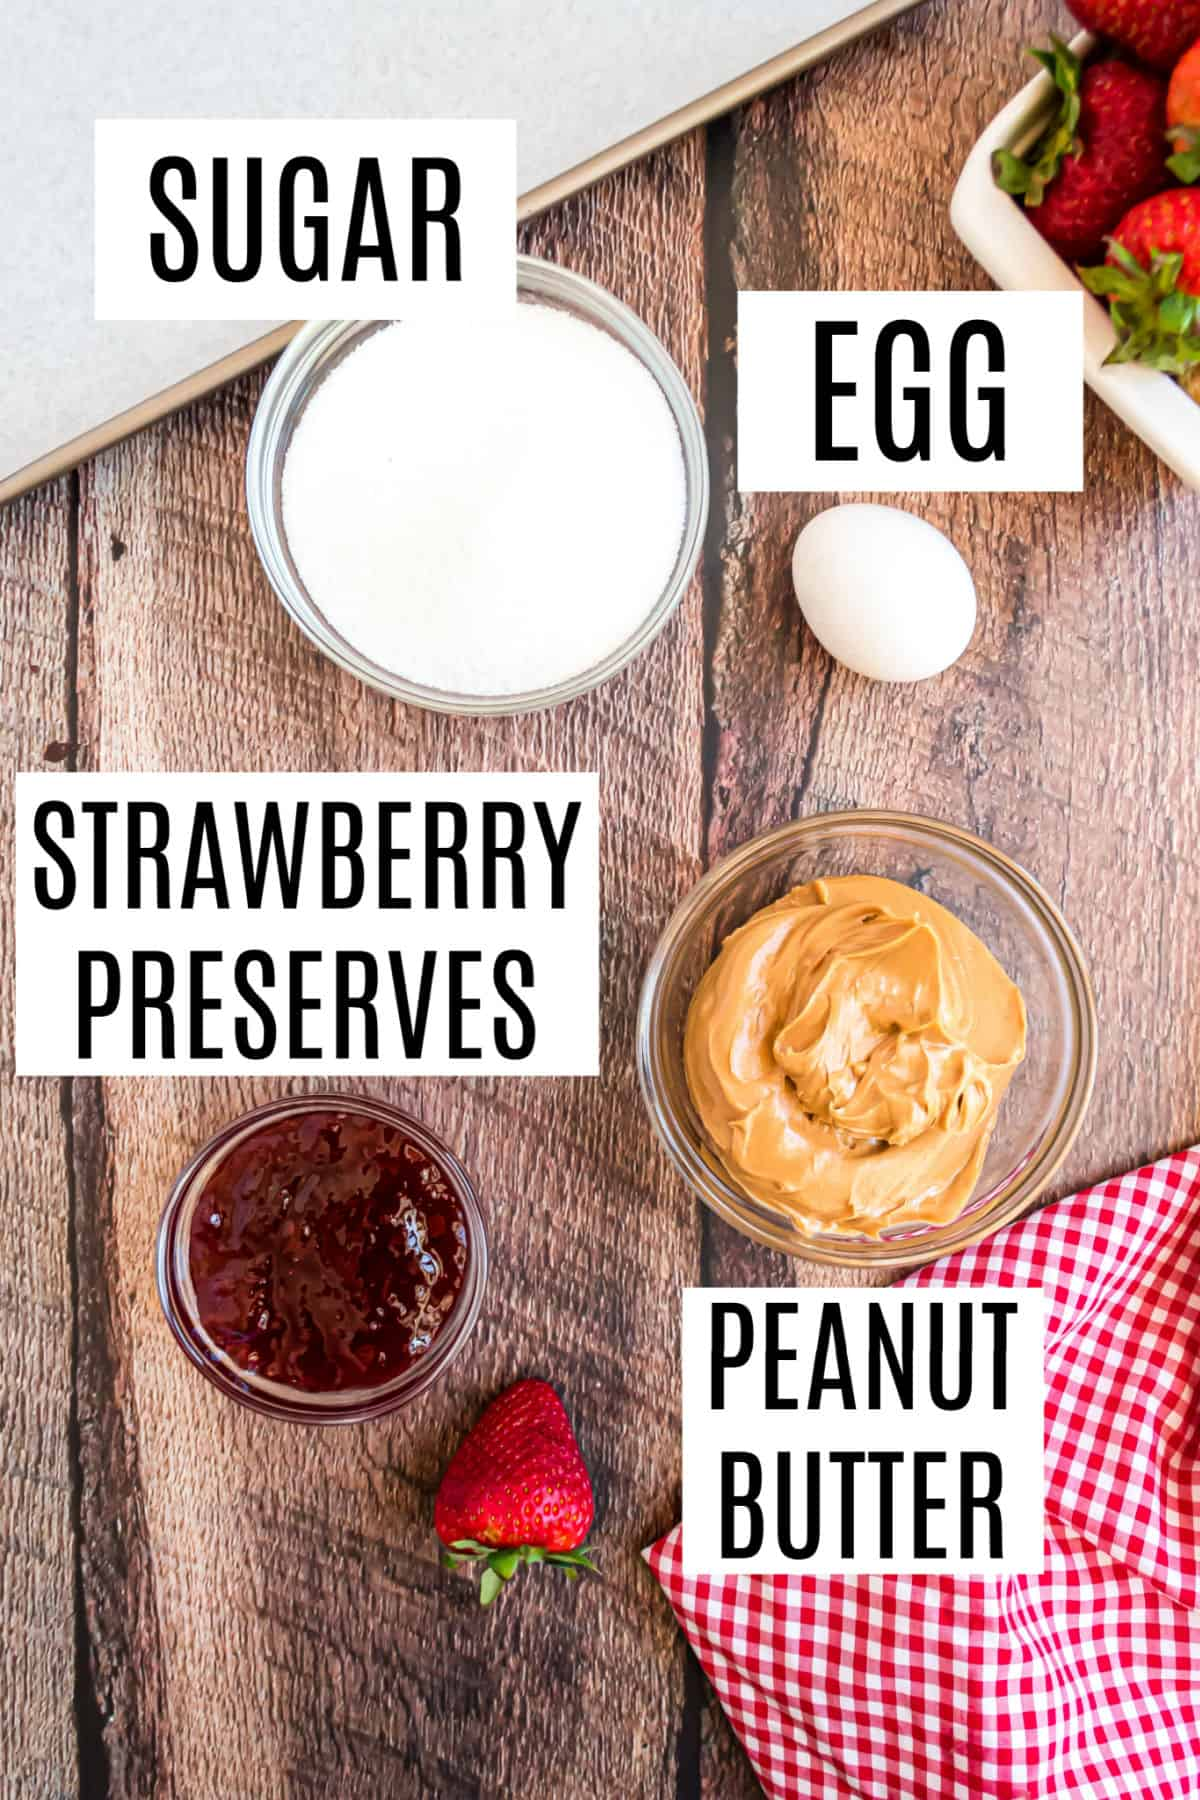 Ingredients needed for peanut butter and jelly cookies.